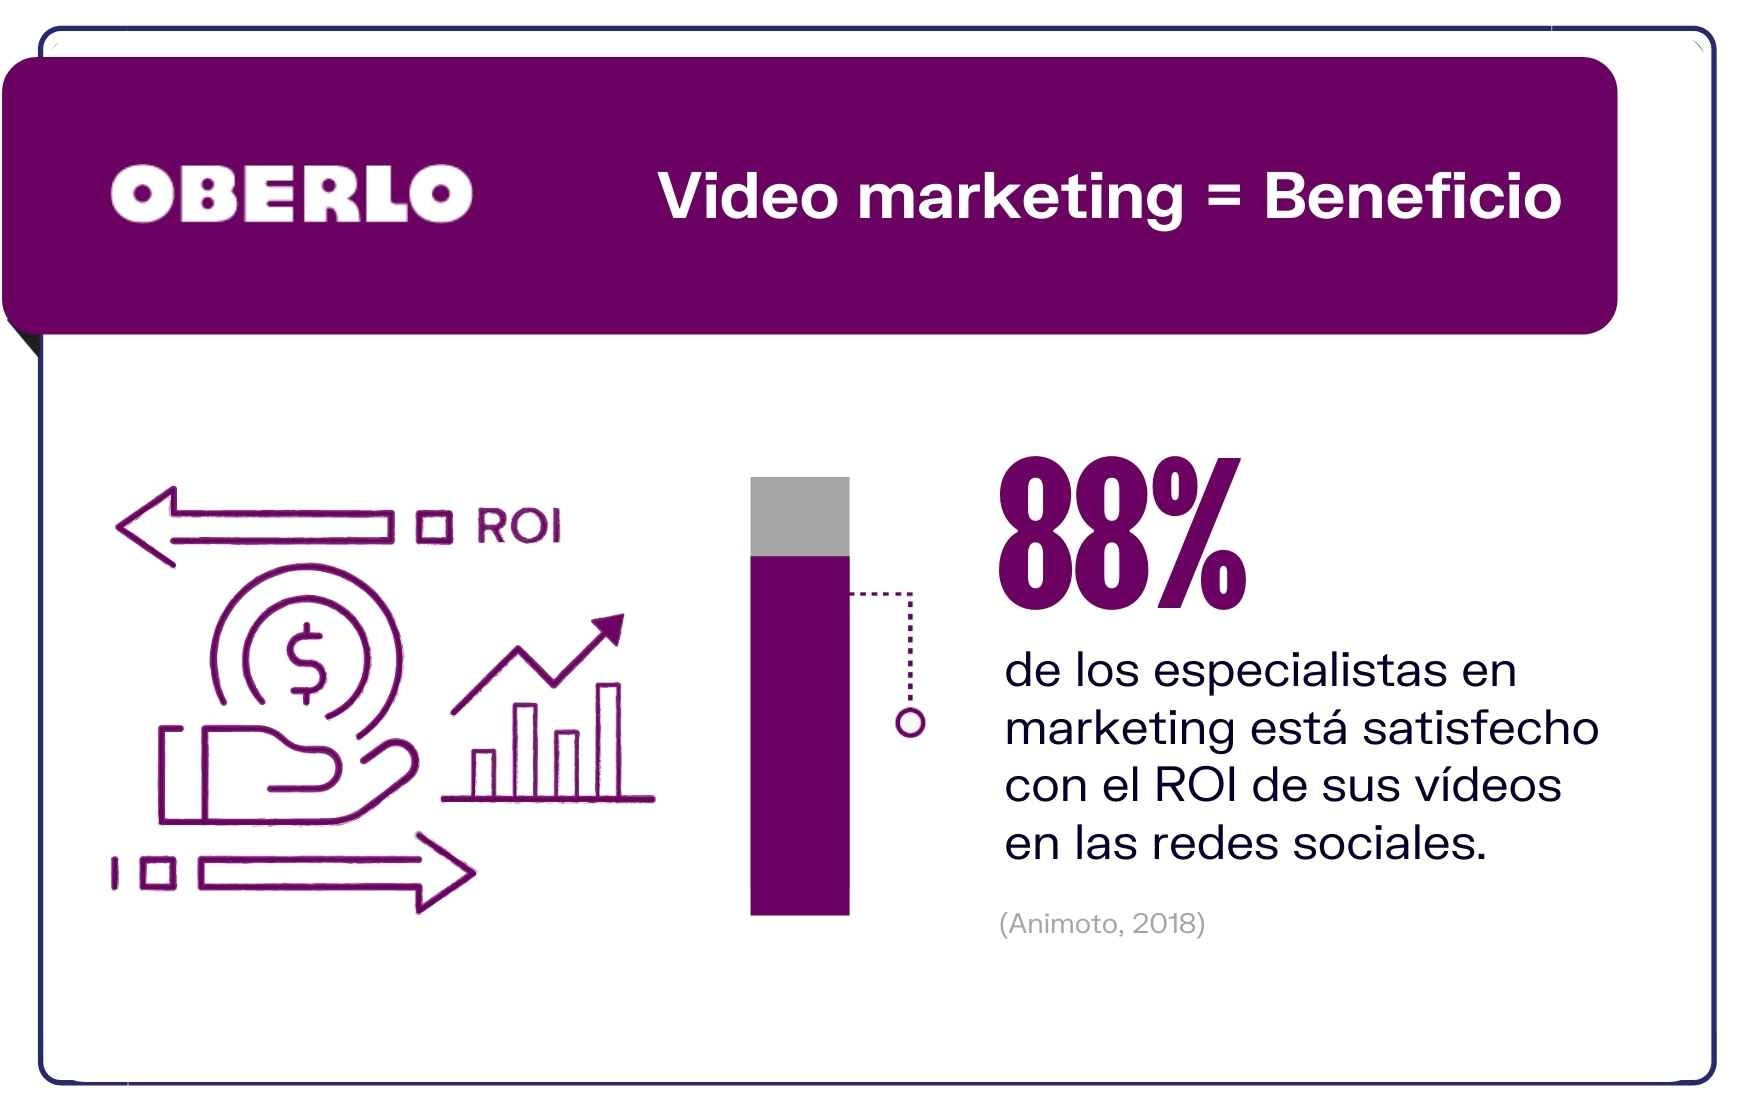 Usuarios de video marketing